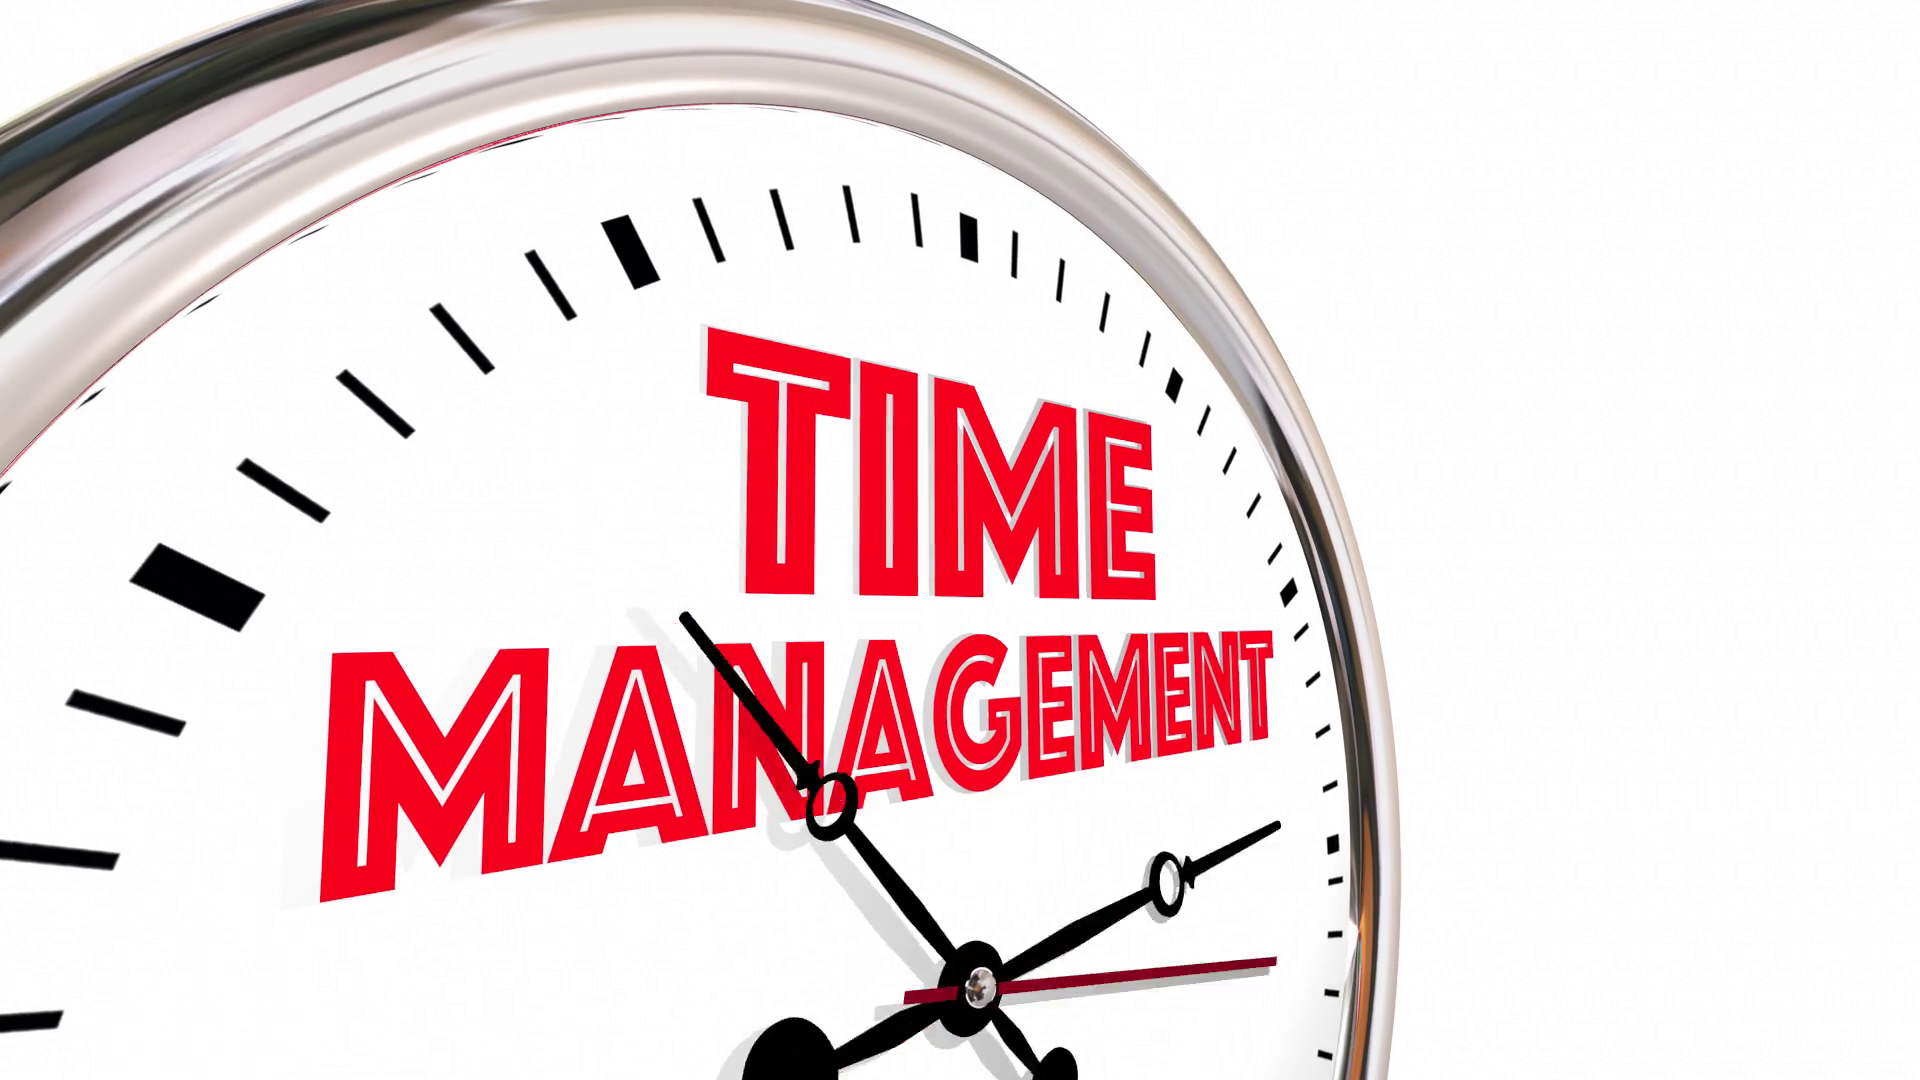 Time Management Efficient Clock Managing Projects 3 D Animation Motion  Background - VideoBlocks - Time Management PNG HD